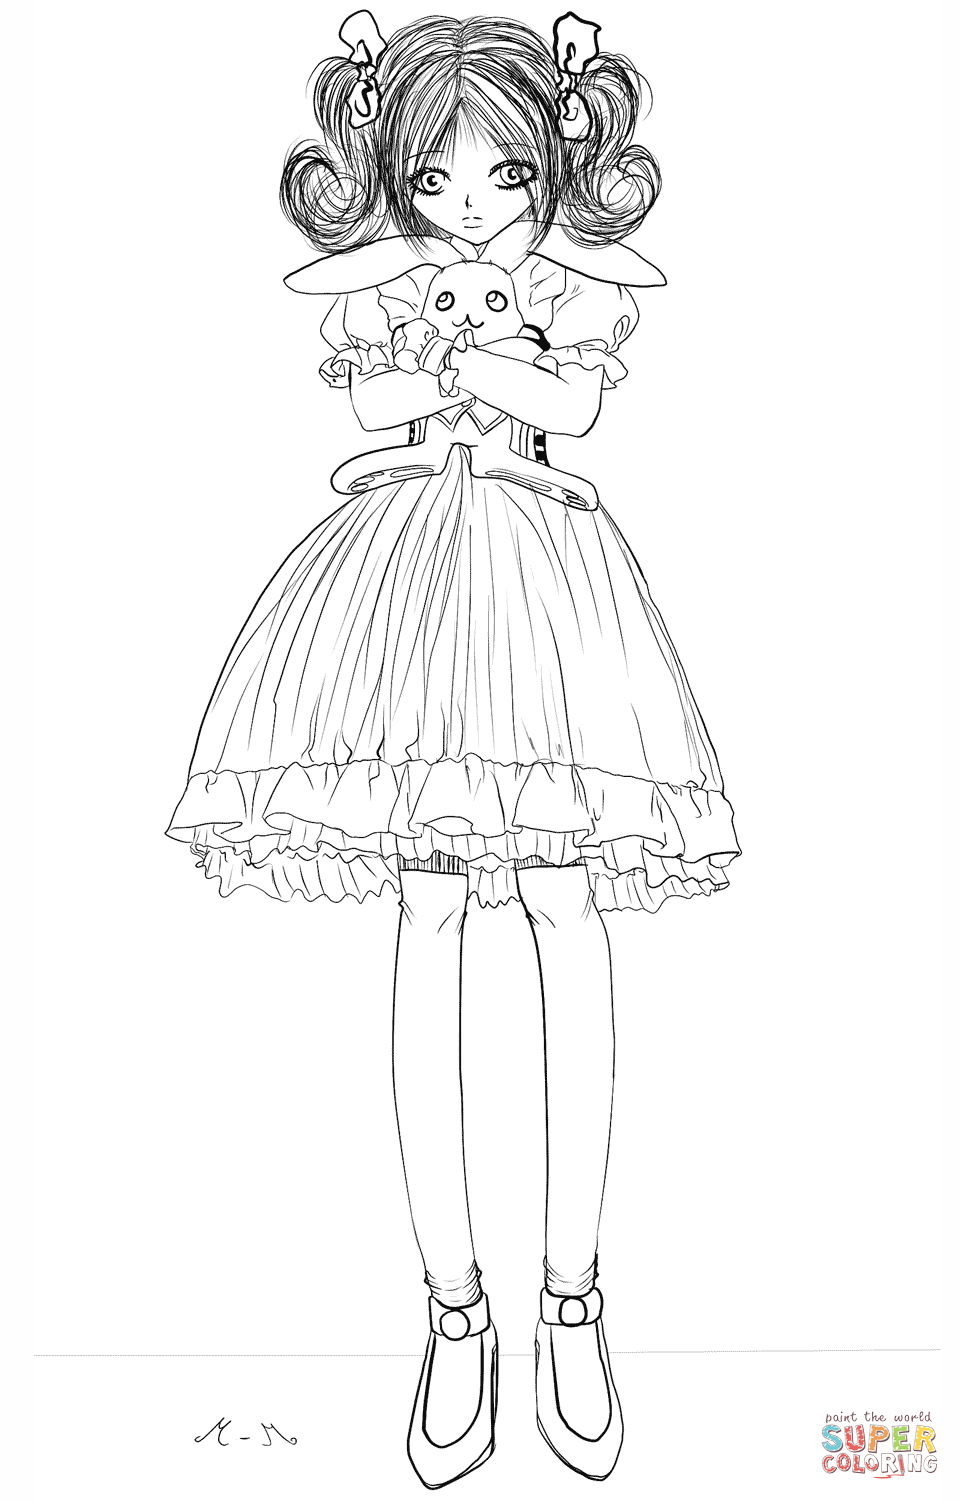 Anime Girl With Stuffed Bunny By Gabriela Gogonea Coloring Page